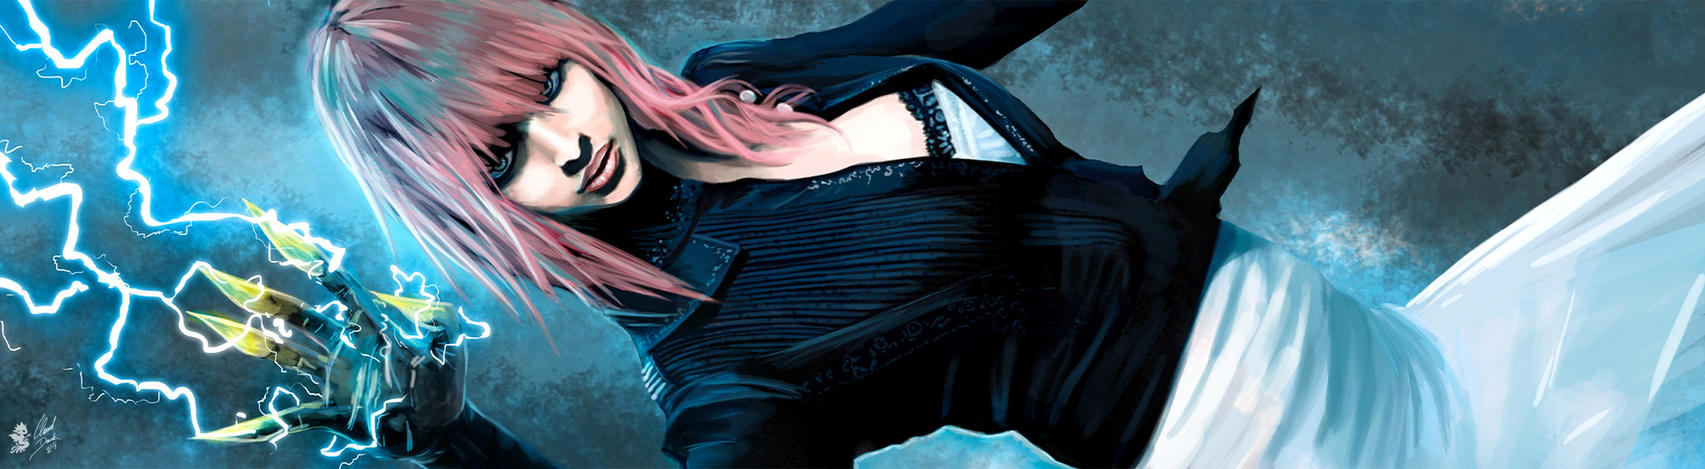 Lightning Returns FFXIII - Contest Entry 2 by cloud-dark1470